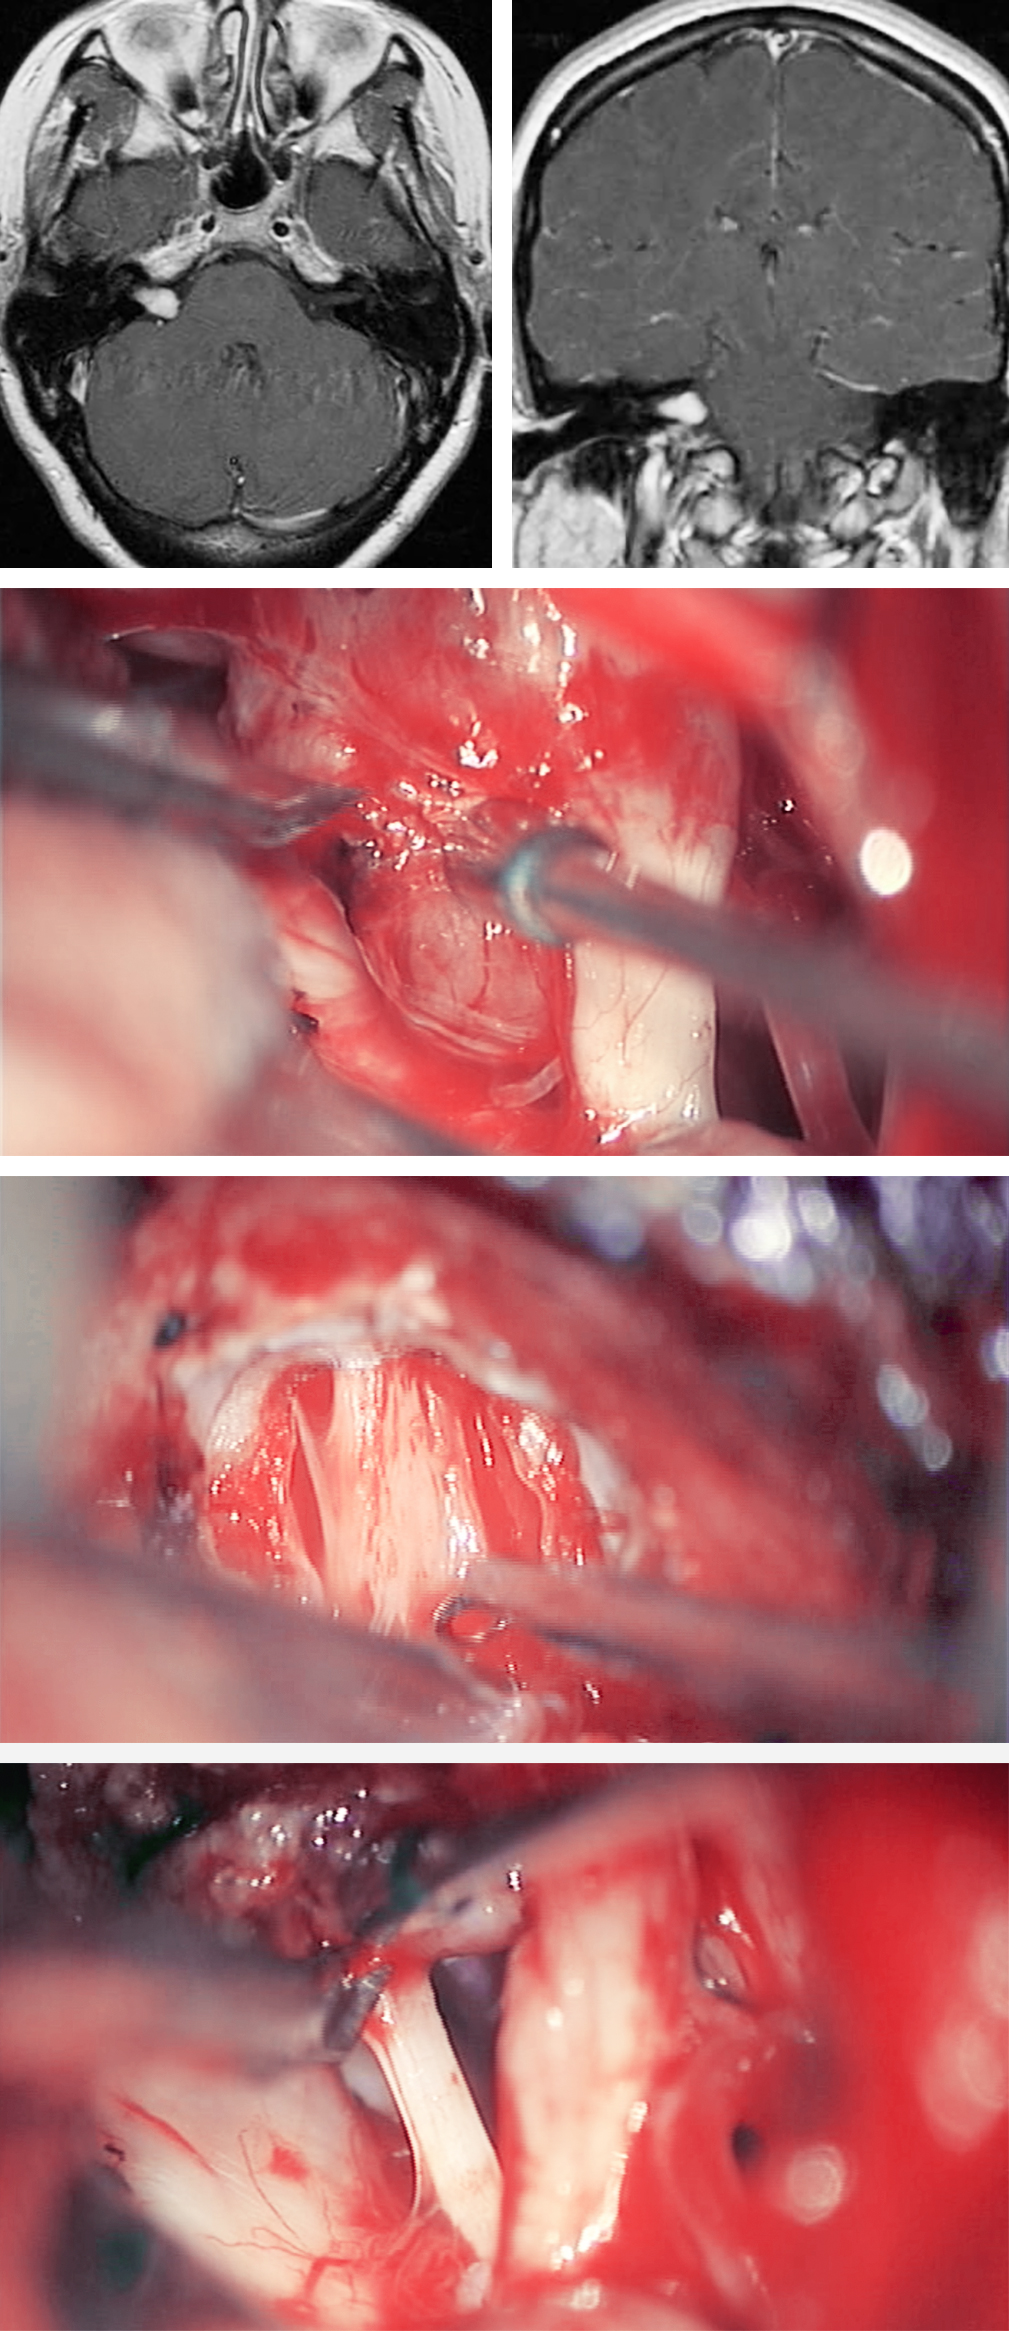 Figure 23: A right-sided 1.7-cm VS was removed via the retromastoid approach. Note the relationship of the tumor to CN VIII (second photo). The bottom two photos demonstrate resection of the intracanalicular and intracisternal components of the tumor. The facial nerve was dissected free of the tumor capsule in the bottom photo.